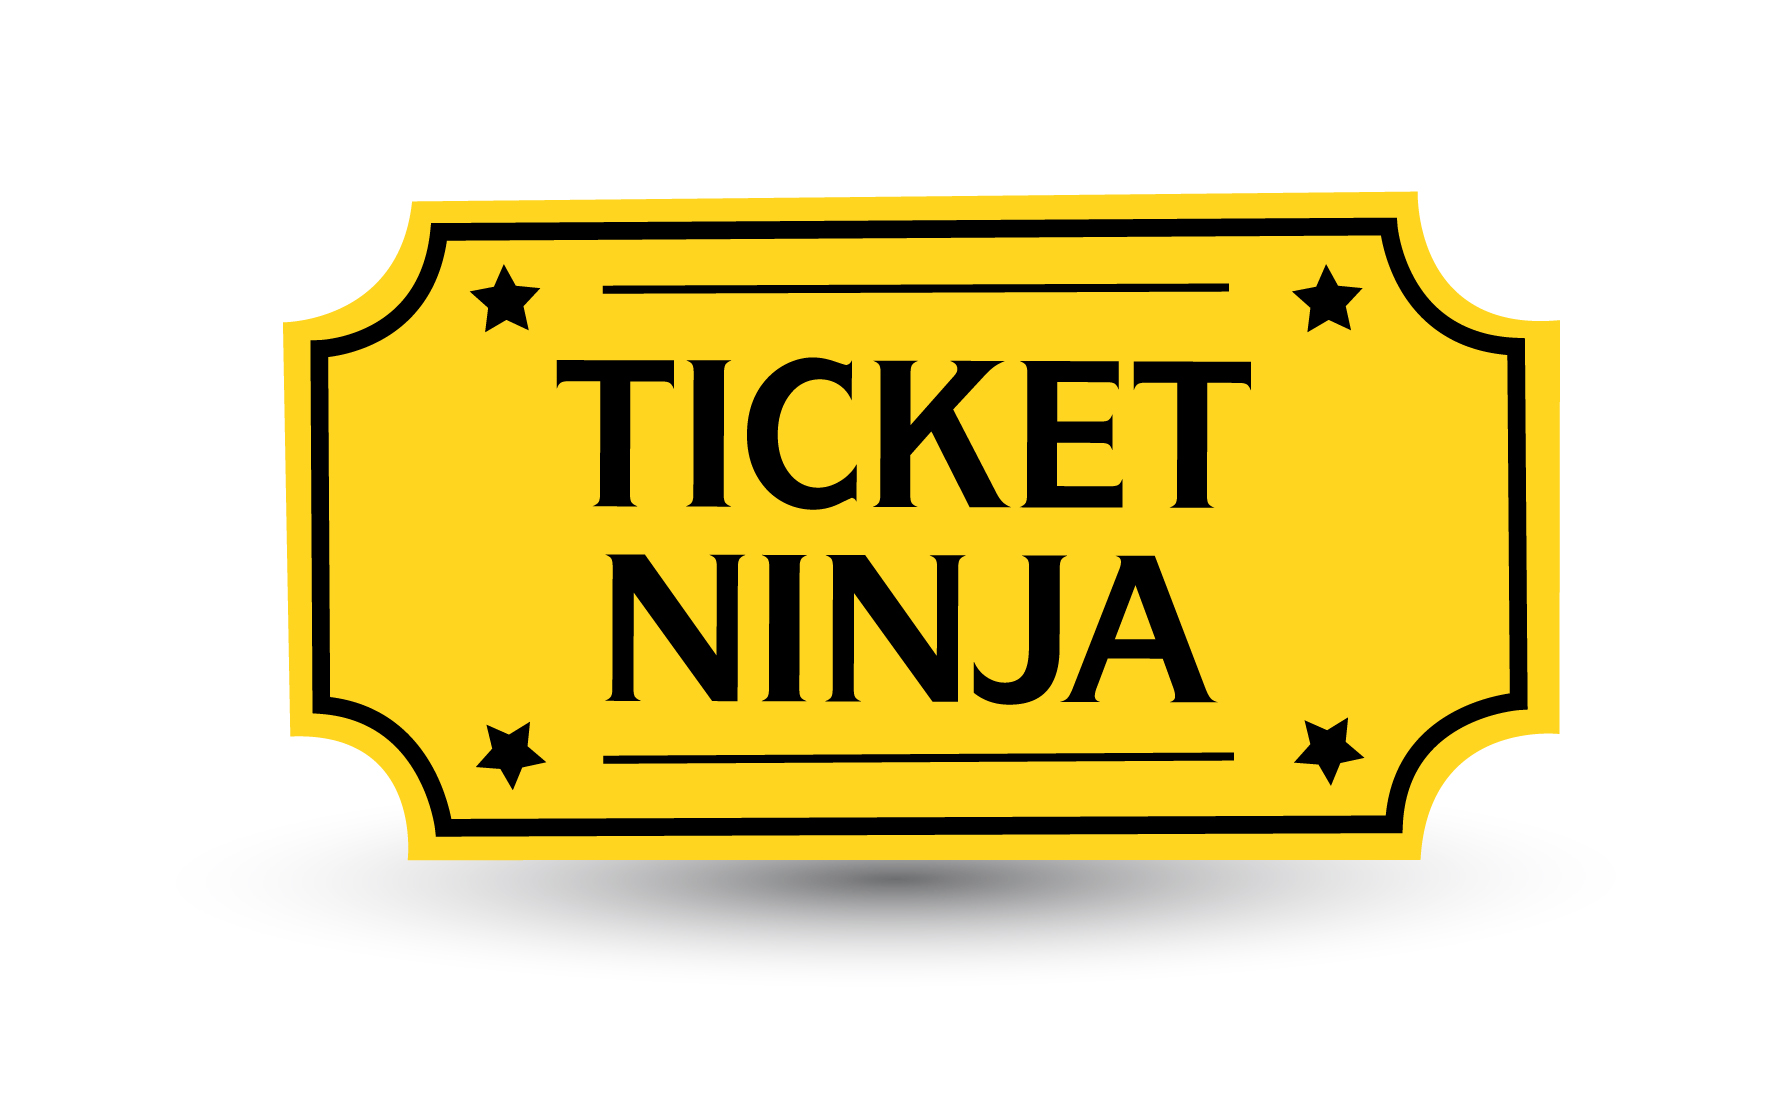 blank ticket clipart free download best blank ticket clipart on